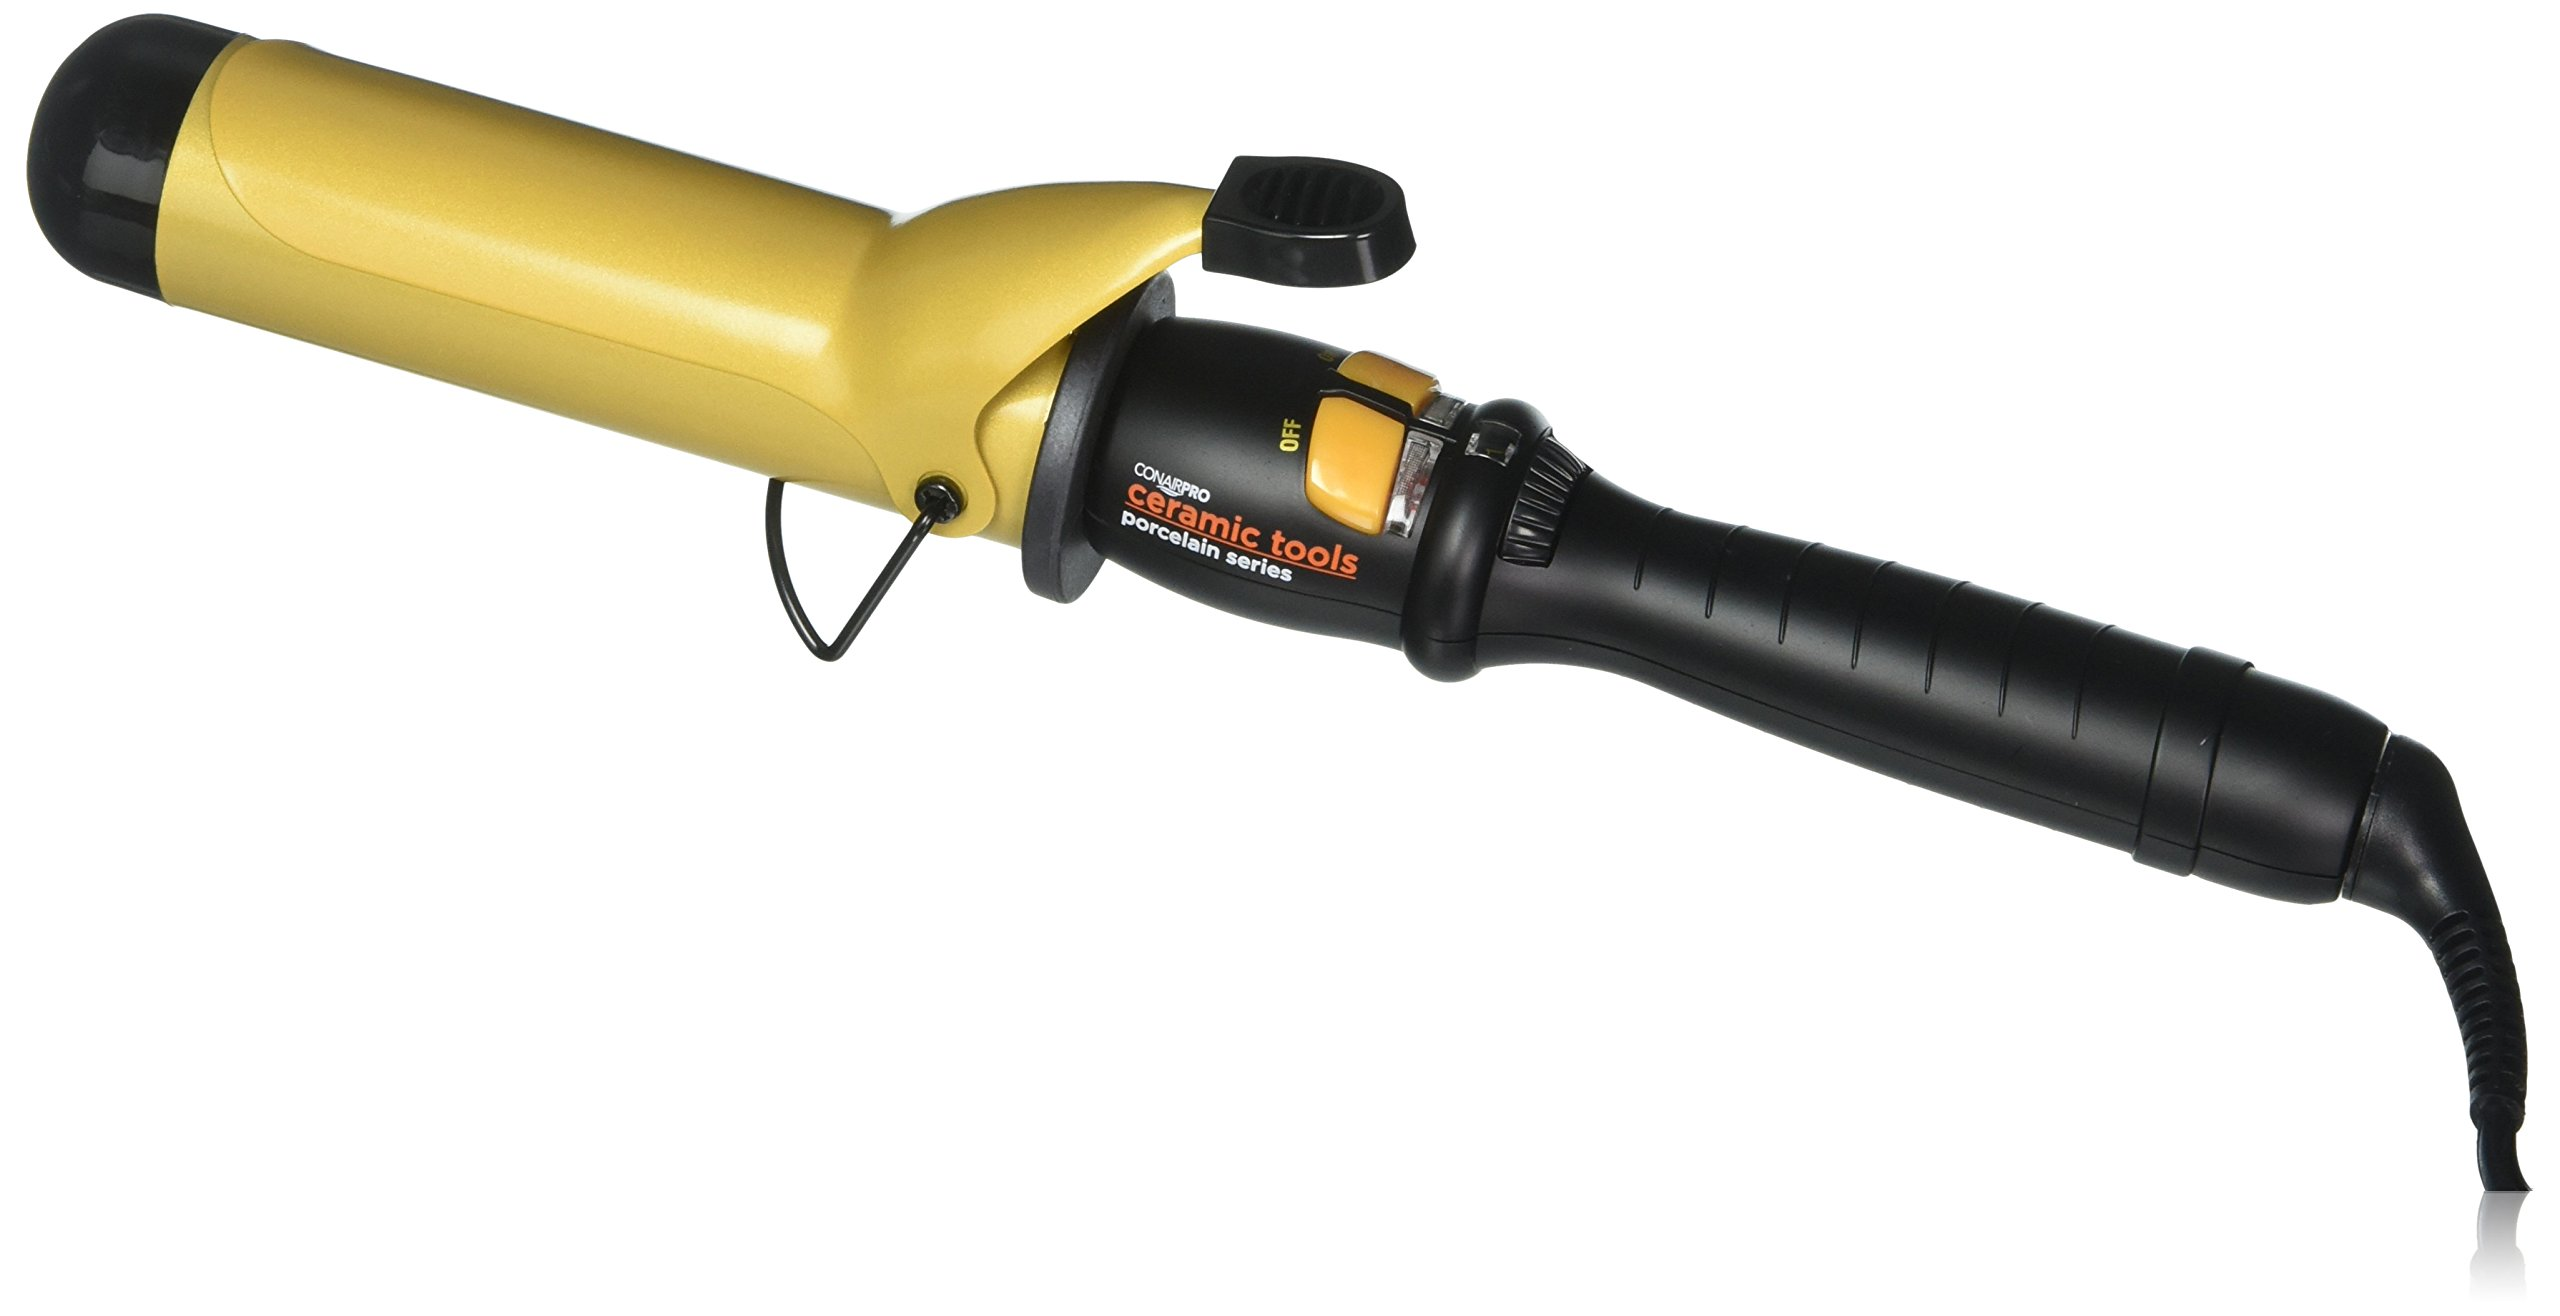 Conair Pro Ceramic Tools Porcelain Series Far-Infrared Spring Curling Iron, 1 1/2 Inch - 71wvXMbgDRL - Conair Pro Ceramic Tools Porcelain Series Far-Infrared Spring Curling Iron, 1 1/2 Inch